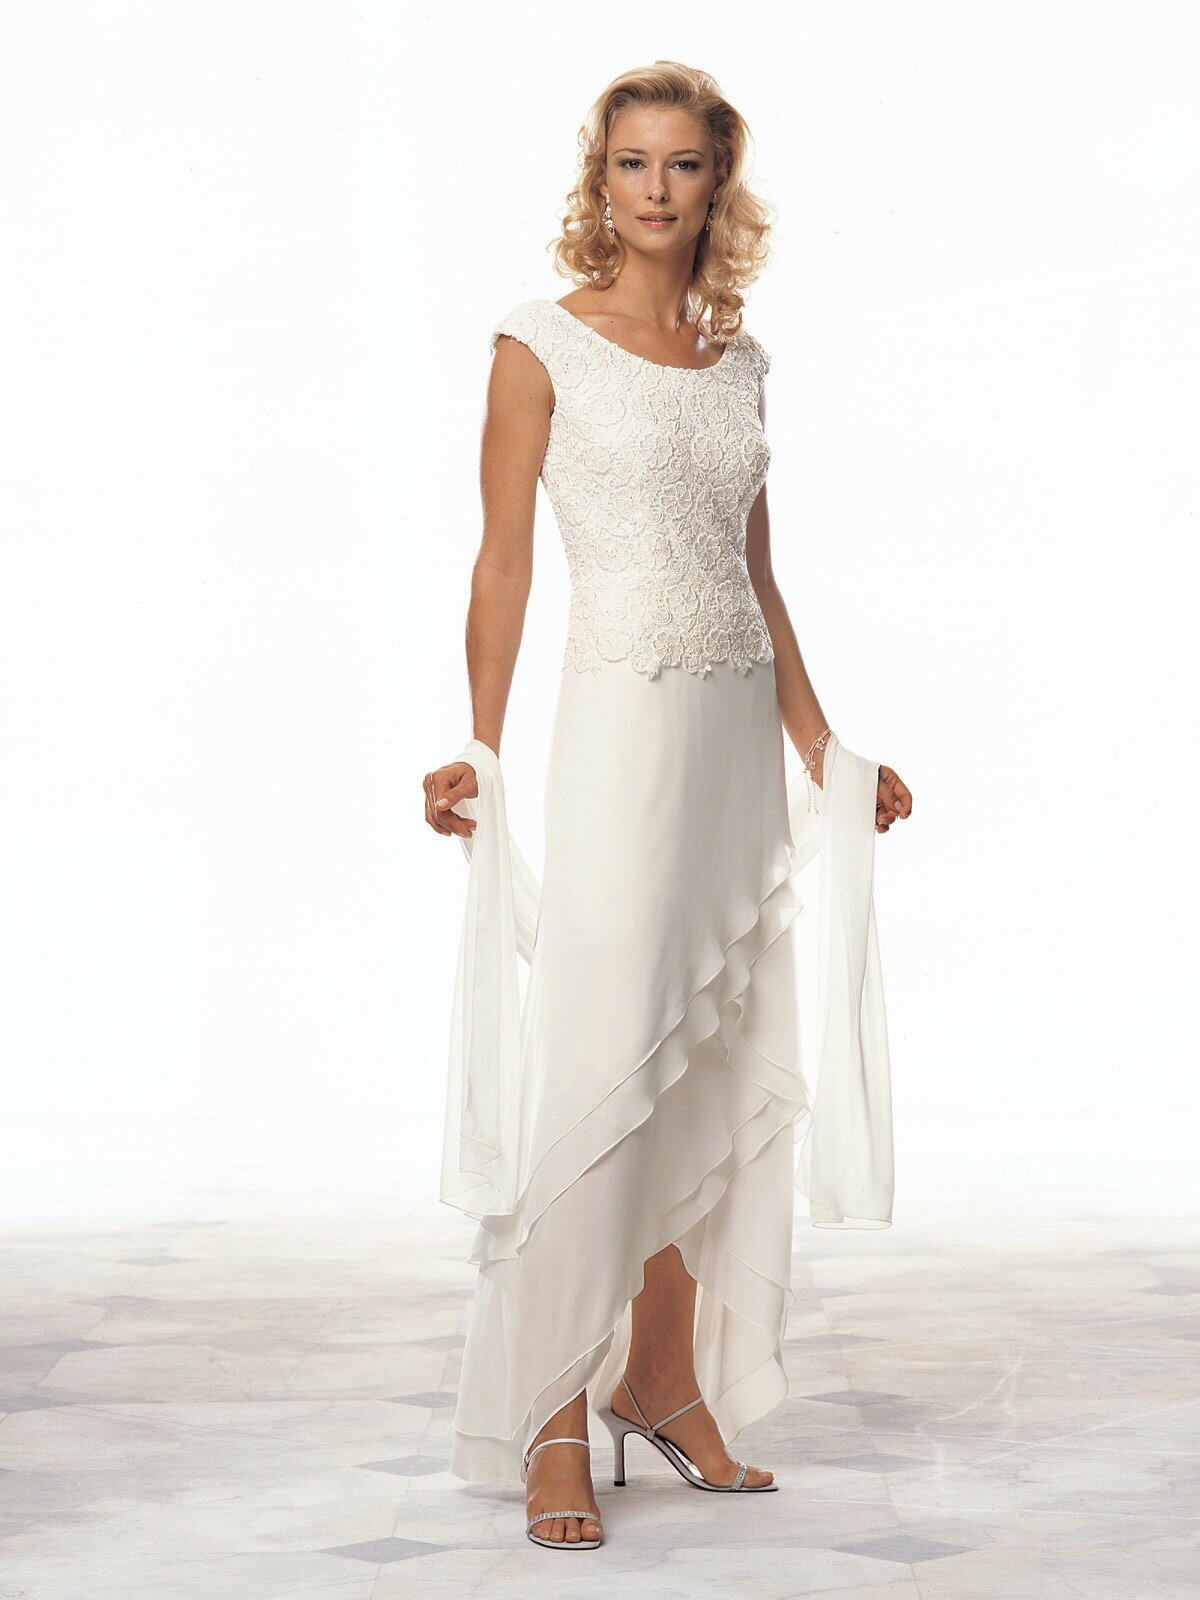 Wedding dresses for mother of the groom Photo - 1